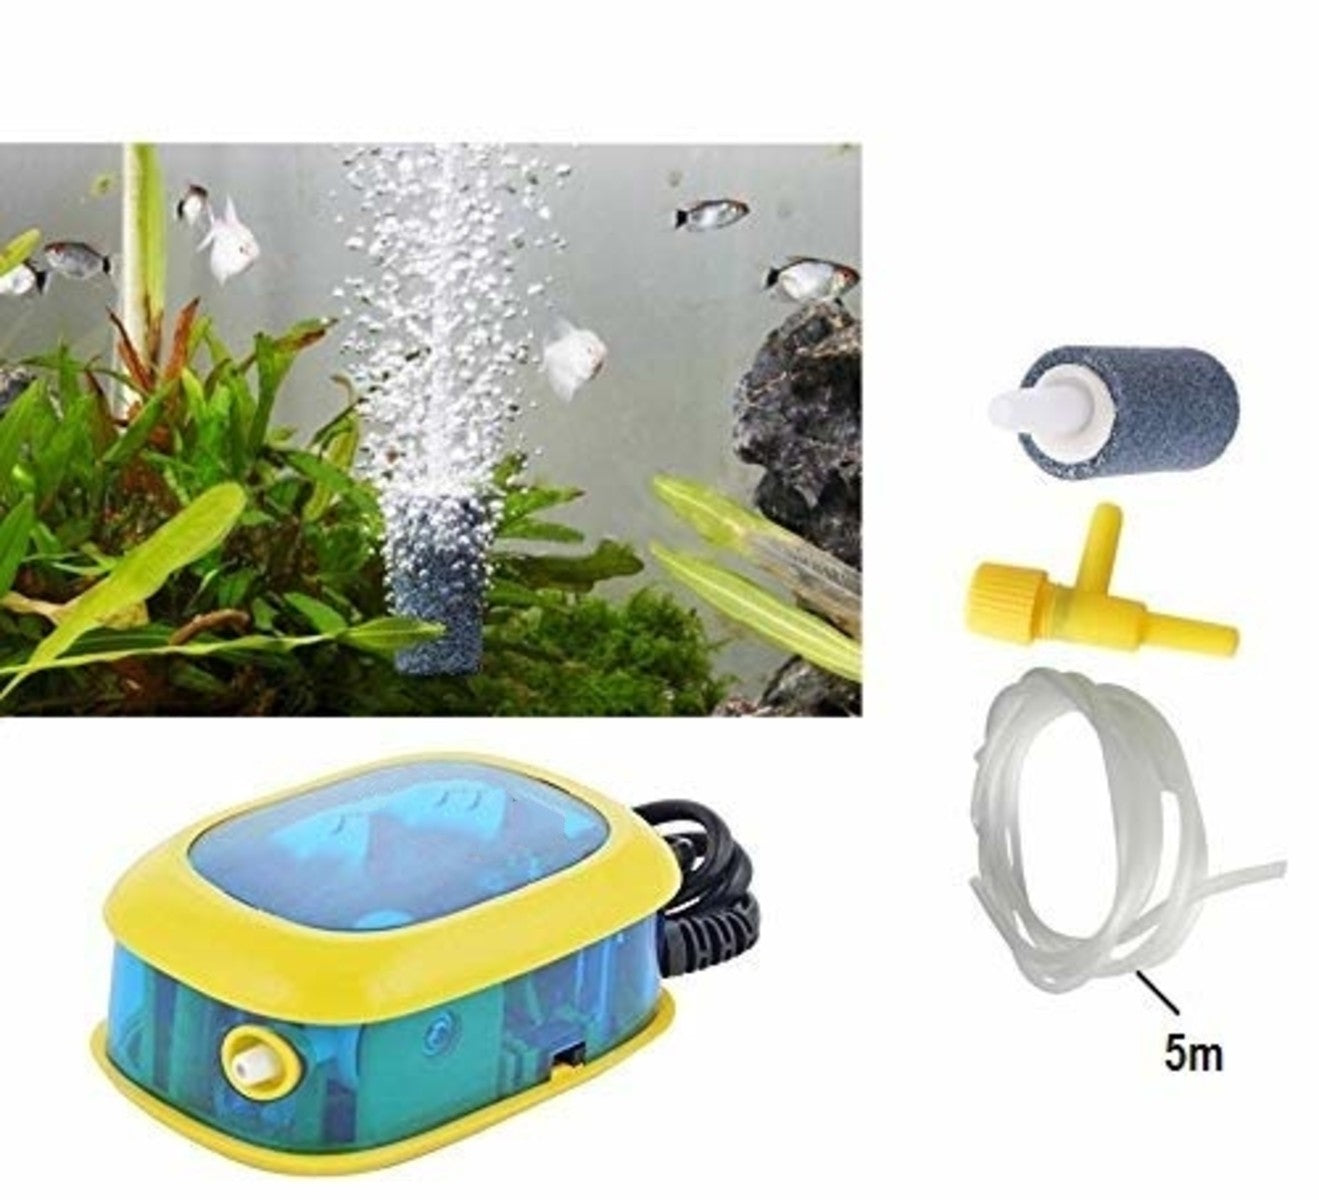 Sobo Aquarium Air Pump Power 3.5 W with Single Hole Fish Tank Oxygen Can Supports 2 Speed Control